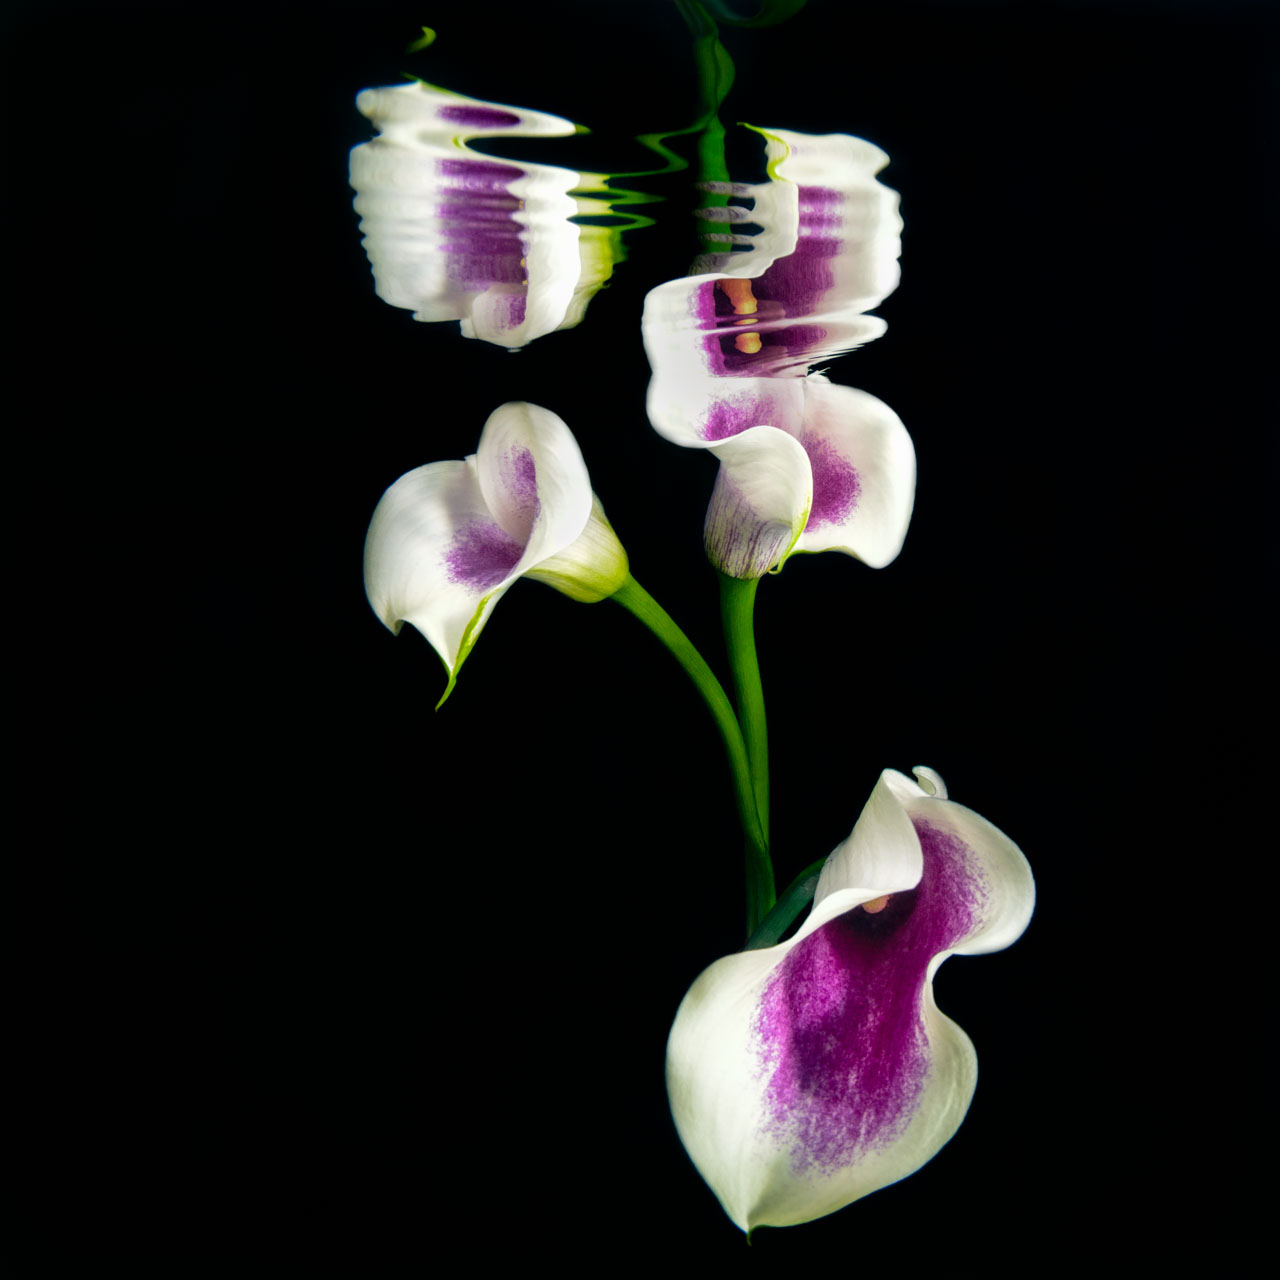 Purple and White Cala Lily underwater fine art image